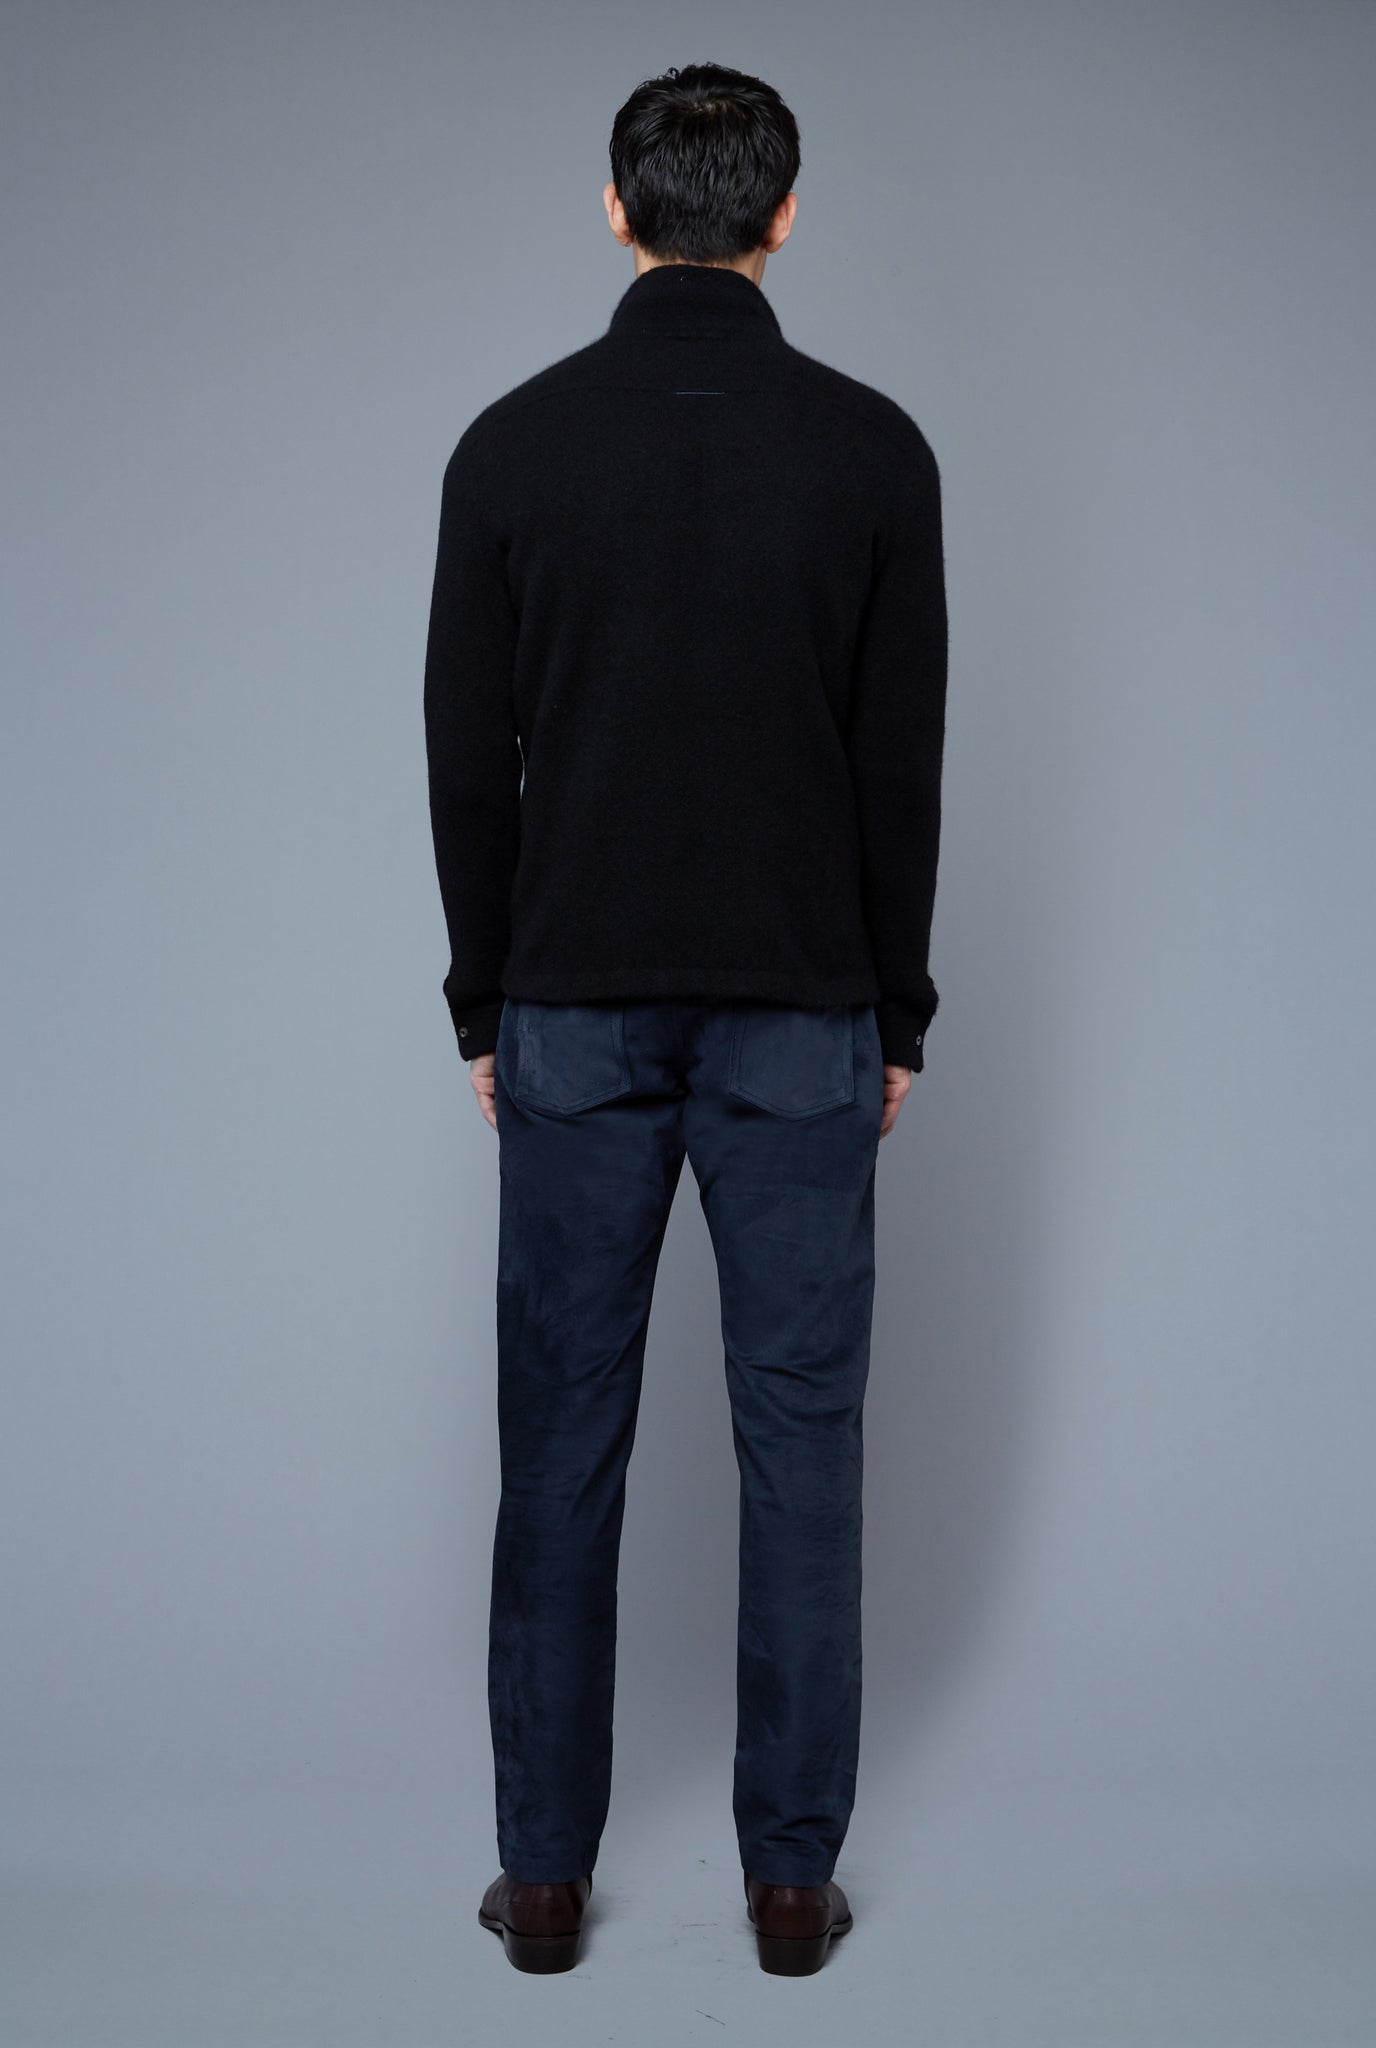 Back View: Model Qiang Li wearing Cashmere Boucle Sweater